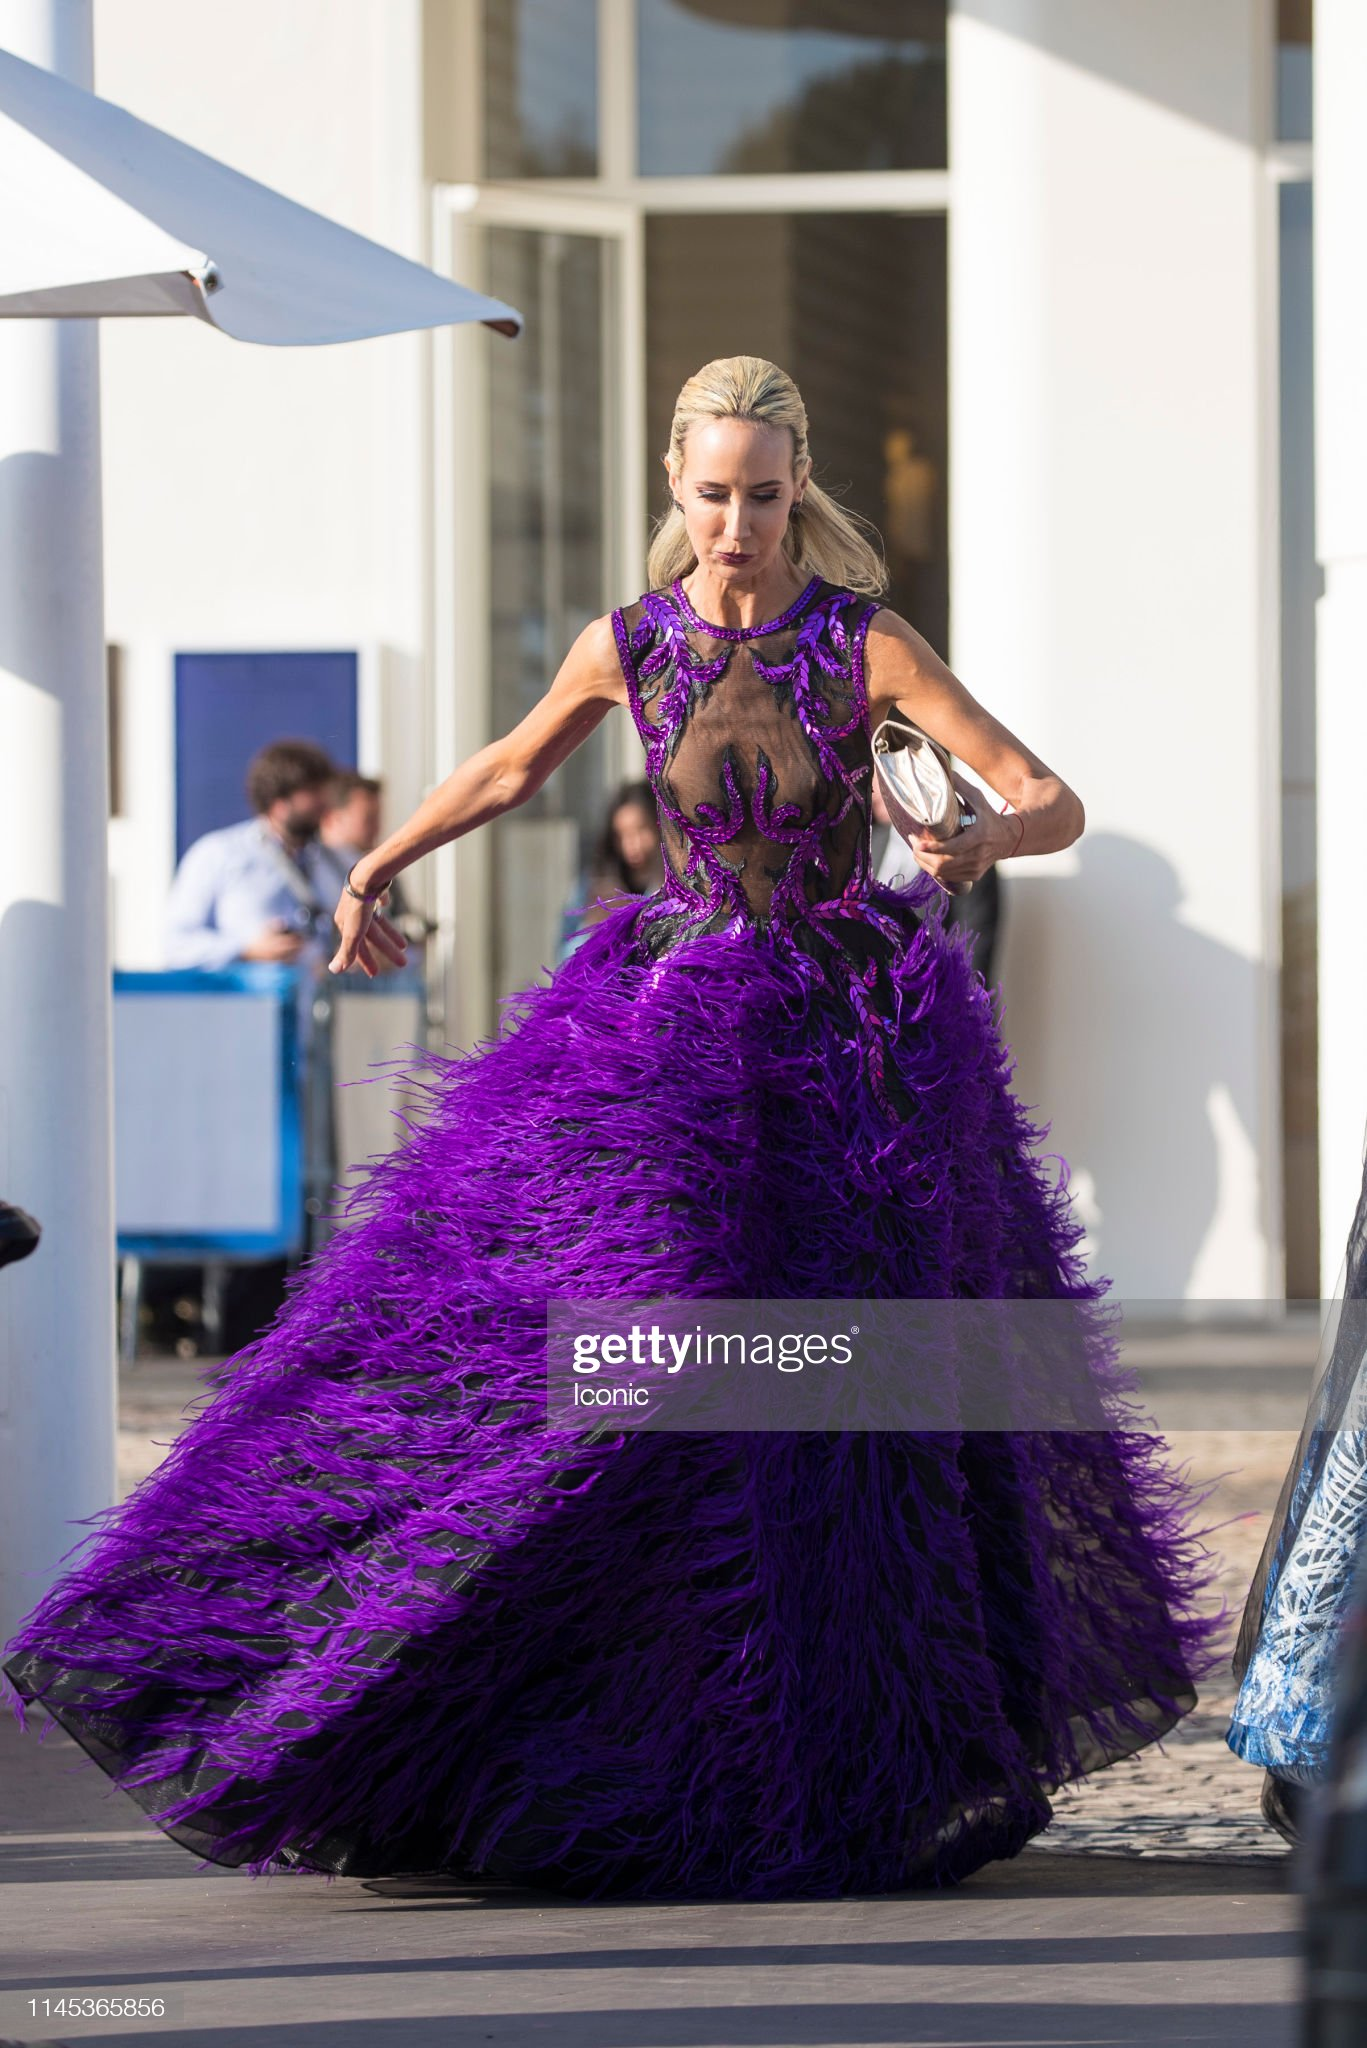 Celebrity Sightings At The 72nd Annual Cannes Film Festival - Day 8 : News Photo